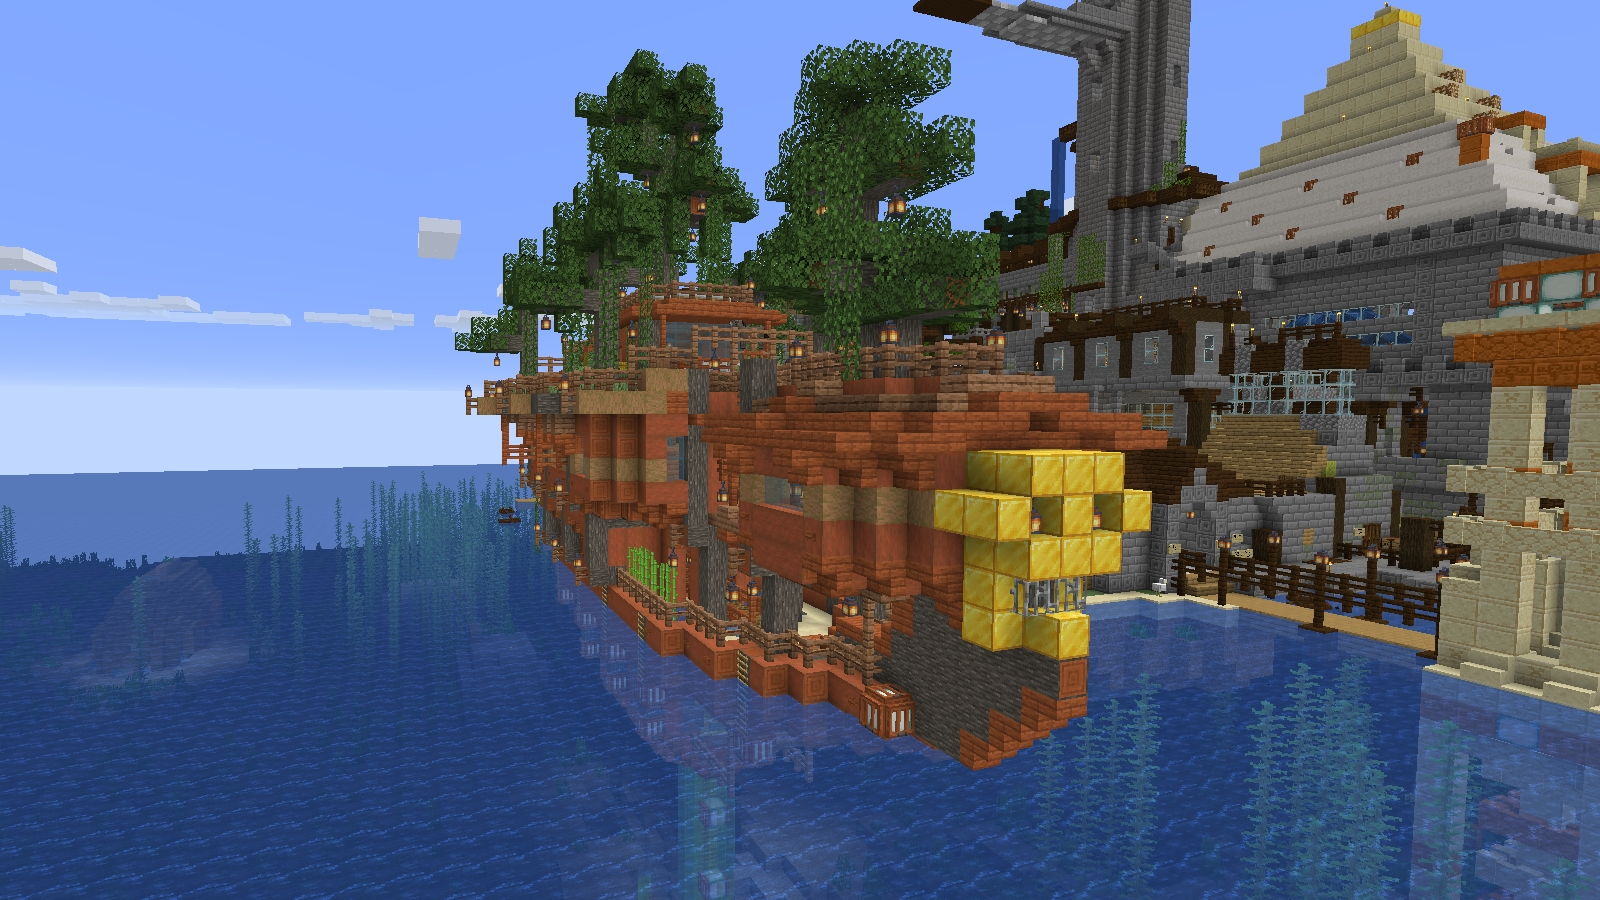 An image of a boat Nate made in vanilla Minecraft.